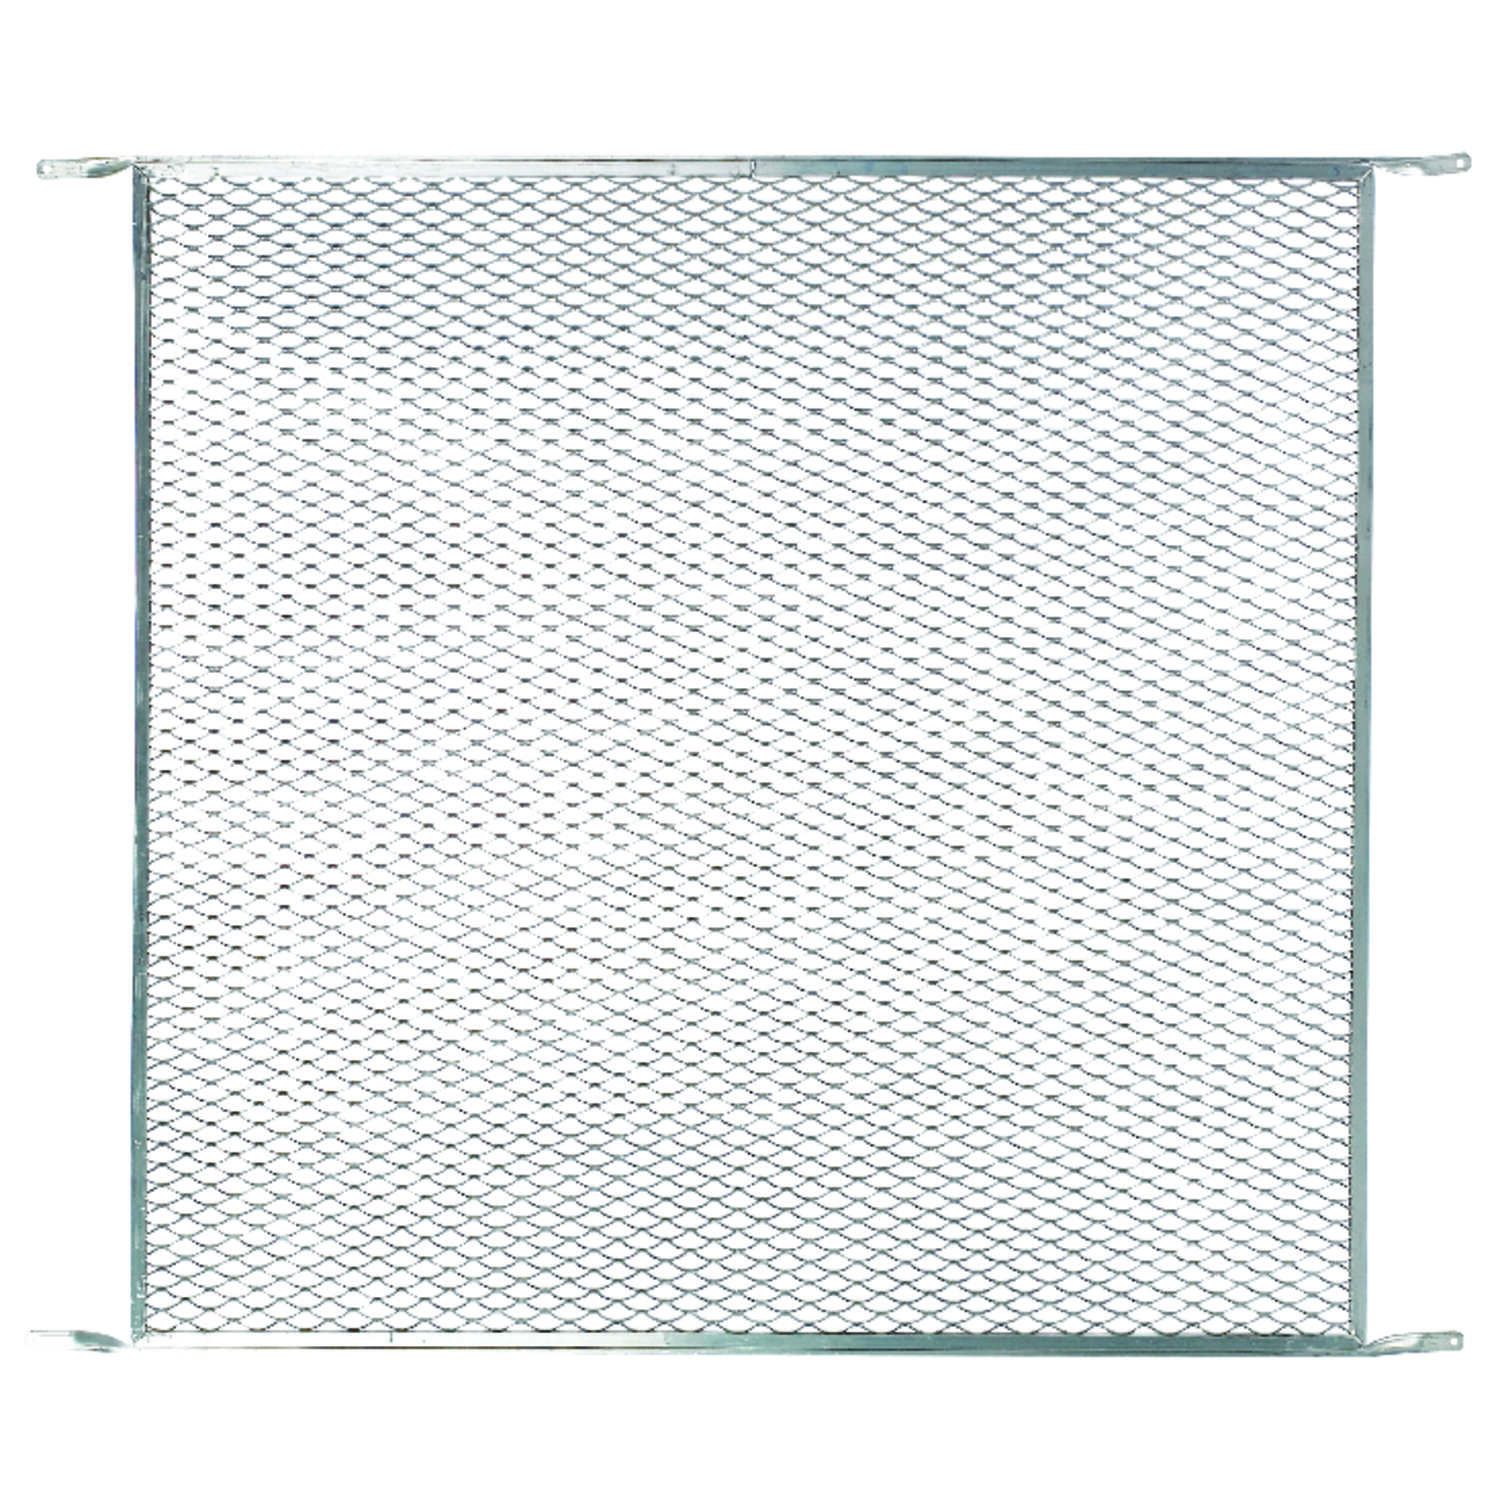 M-D Building Products  Satin  Silver  Aluminum  Door Grille  1 pc.